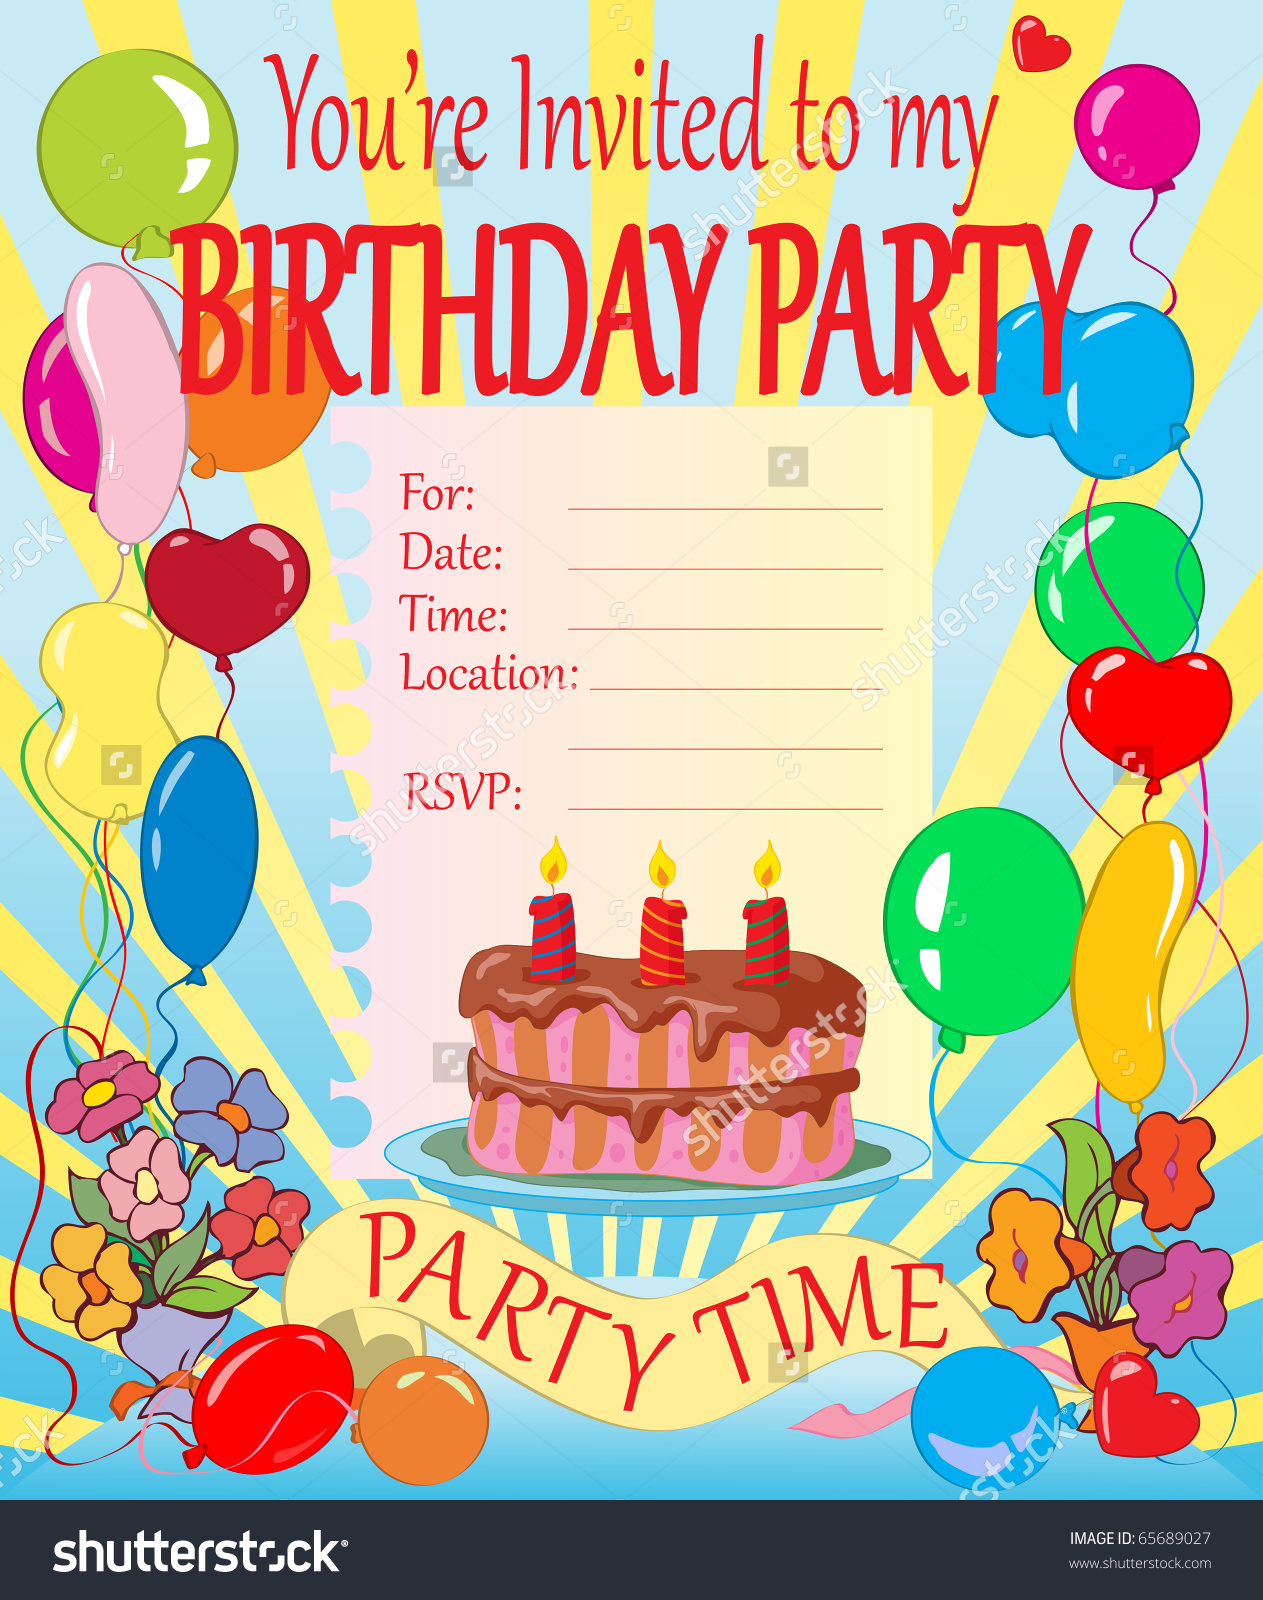 birthday card party ; Ideas-Invitation-Card-For-Birthday-Party-57-for-HD-Image-Picture-Ideas-with-Invitation-Card-For-Birthday-Party